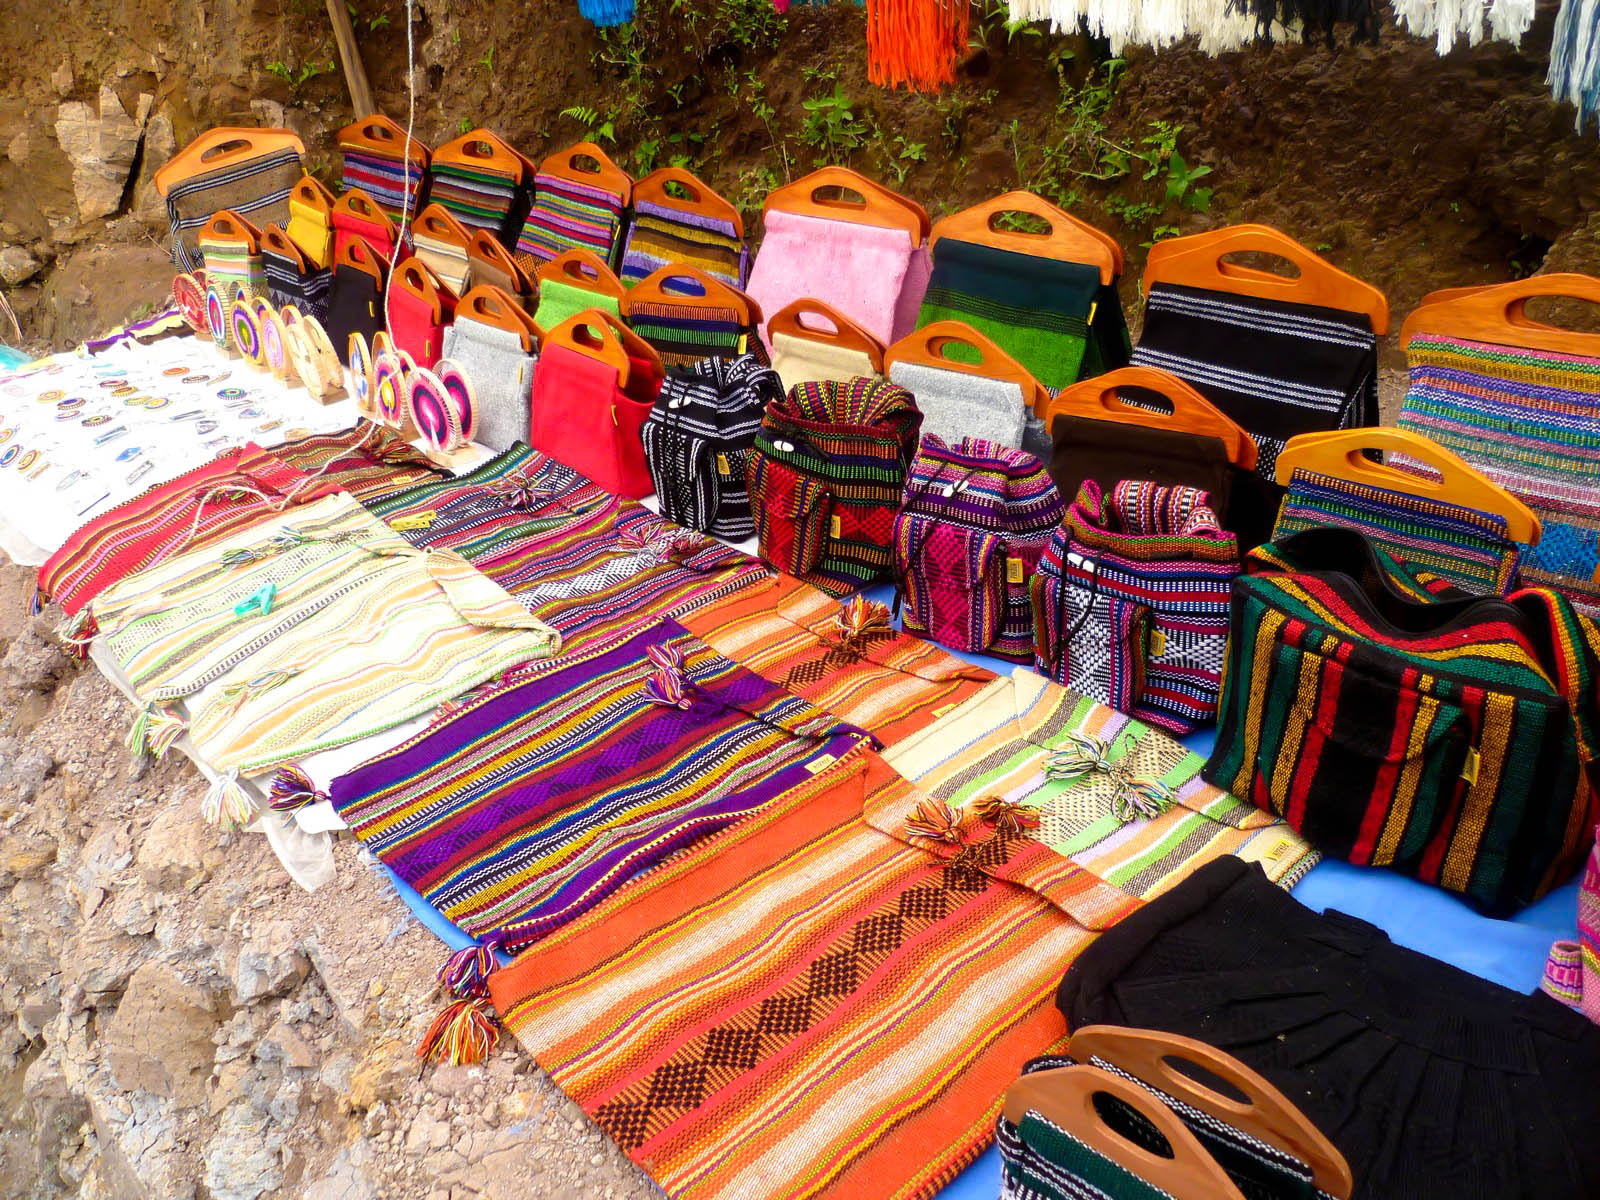 Photograph Colourful Bags by Elaine Poon on 500px